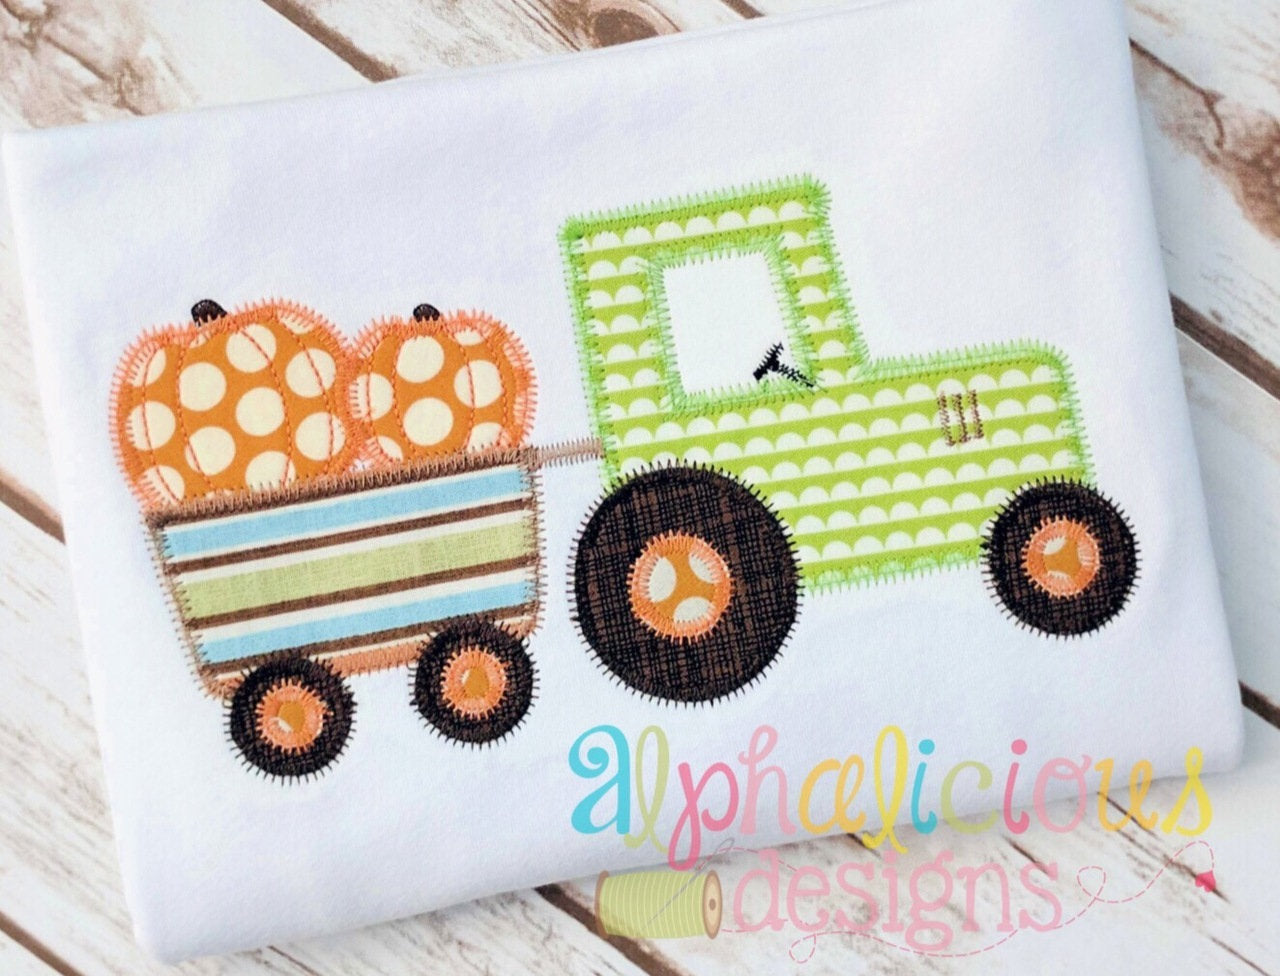 Pumpkin patch tractor zigzag applique design u alphalicious designs